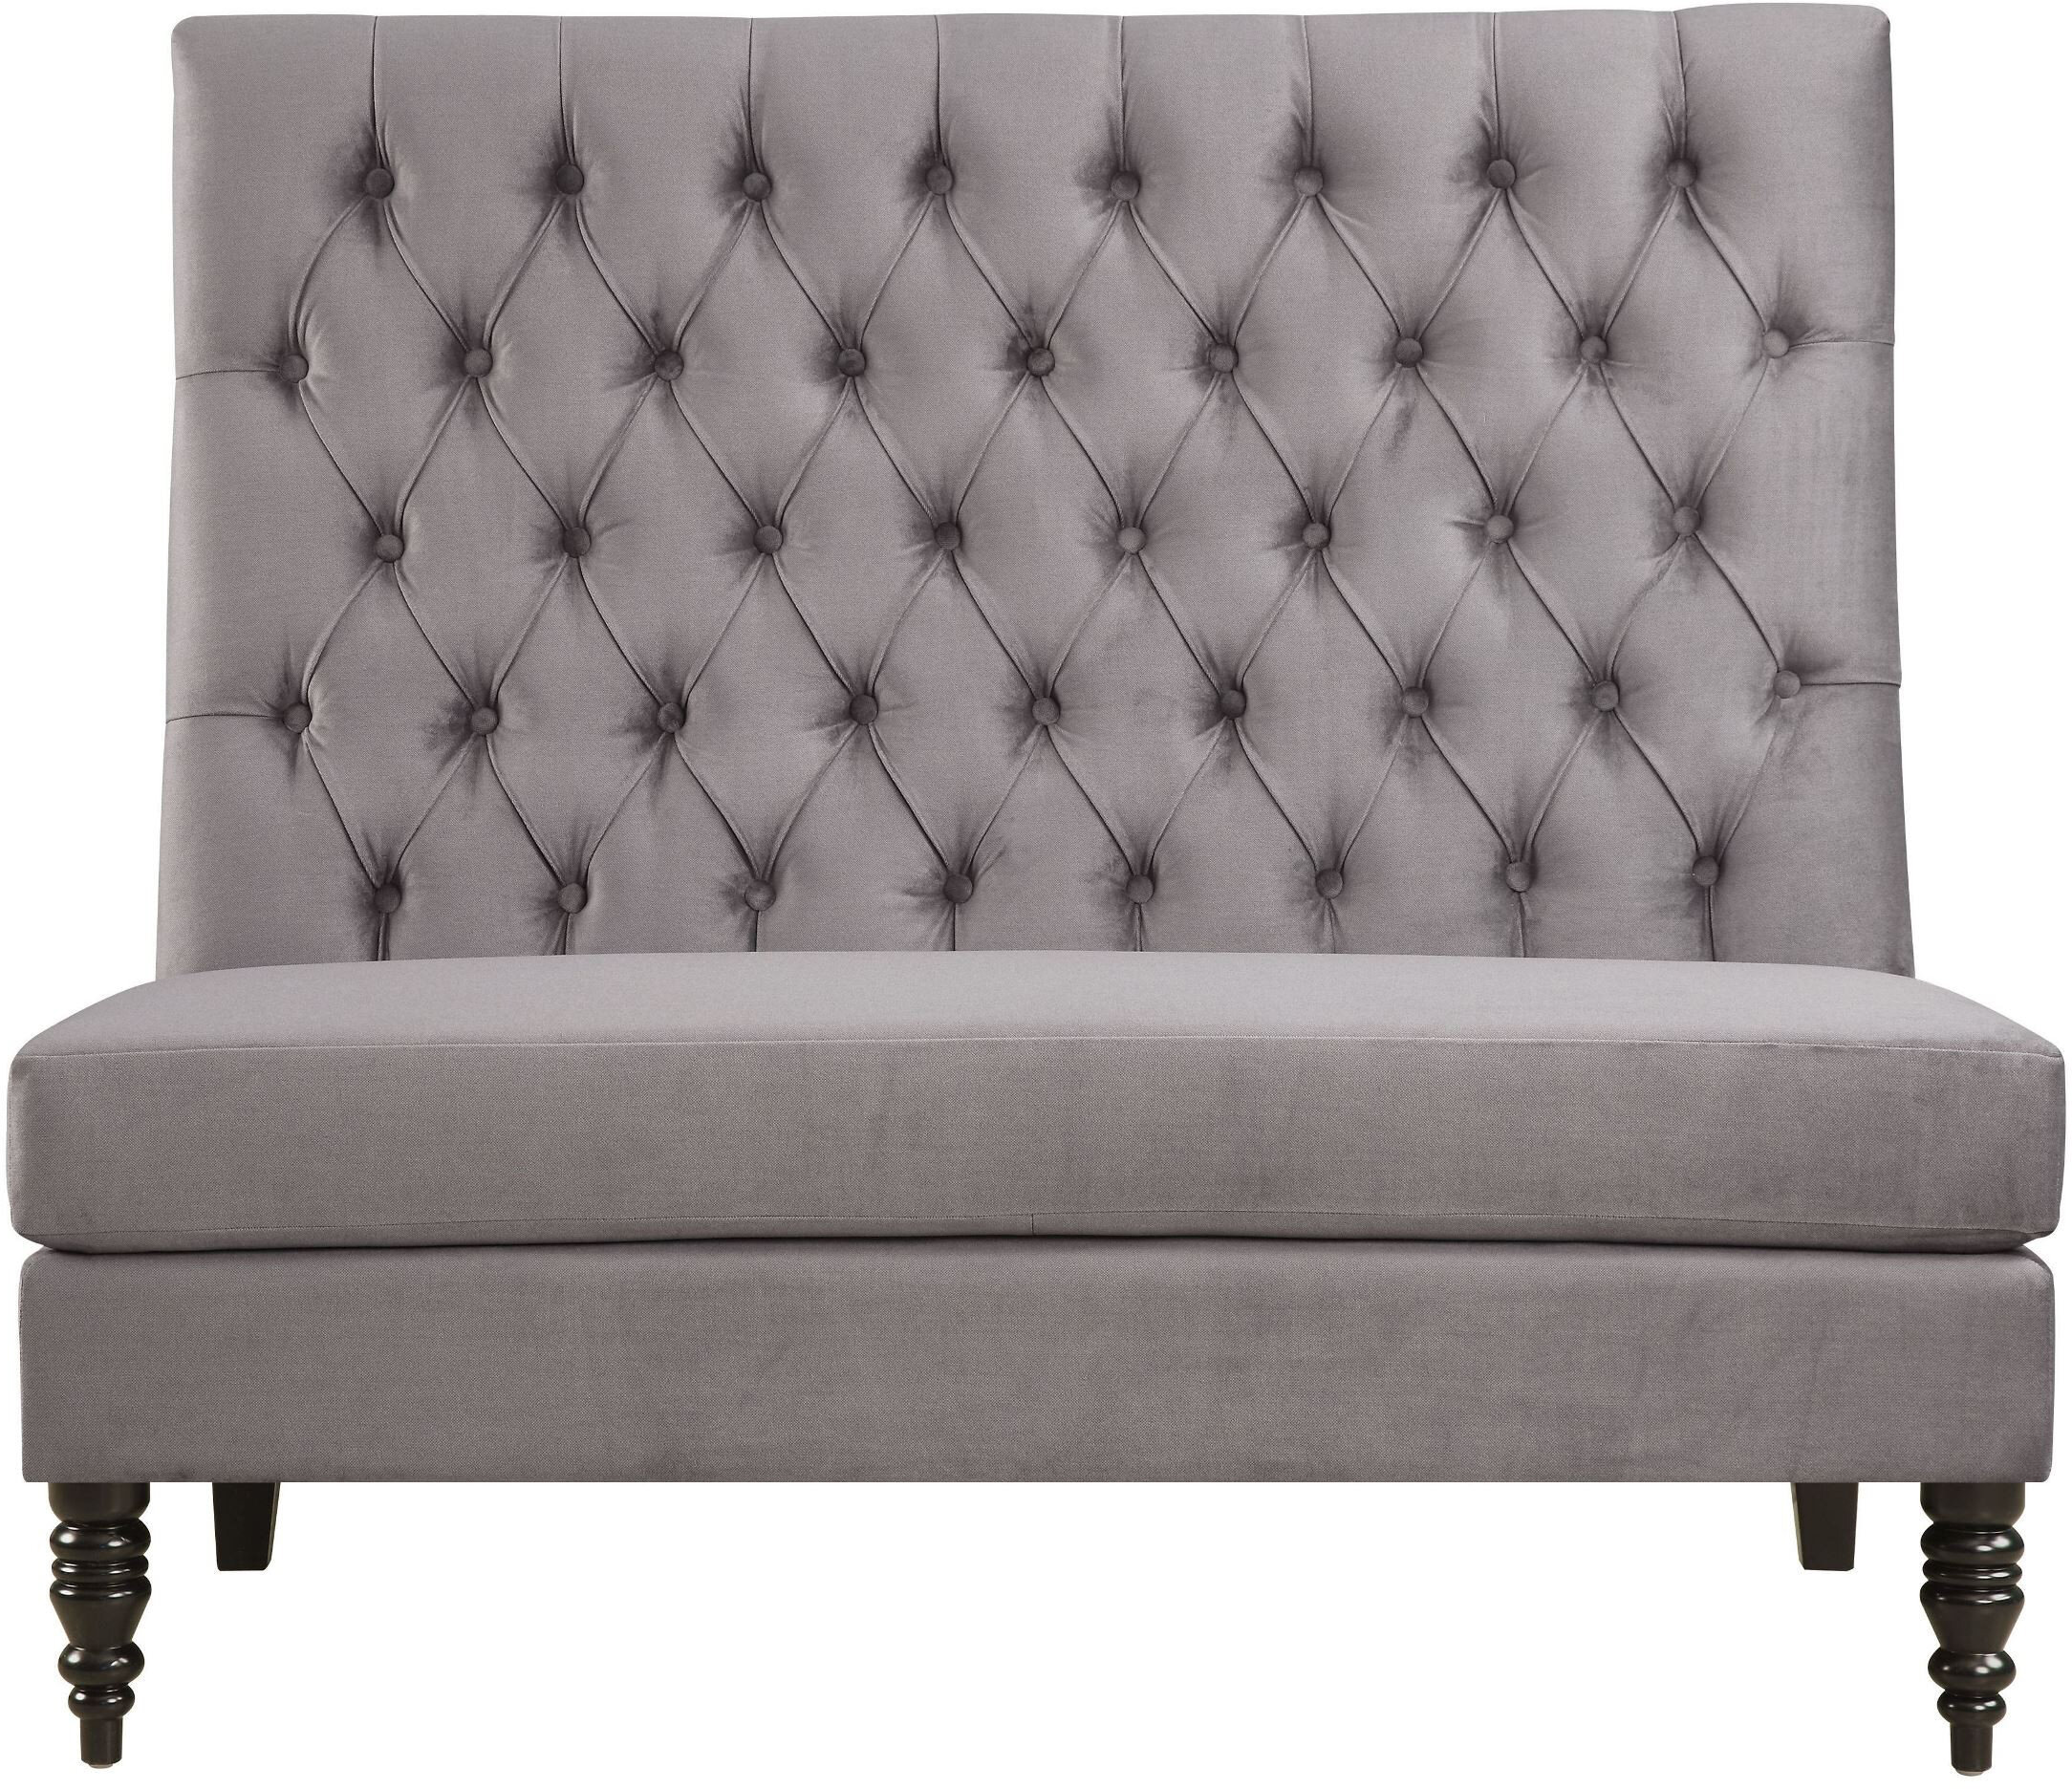 Picture of: Willa Arlo Interiors Greenford 49 5 Tufted Settee Bench Reviews Wayfair Ca